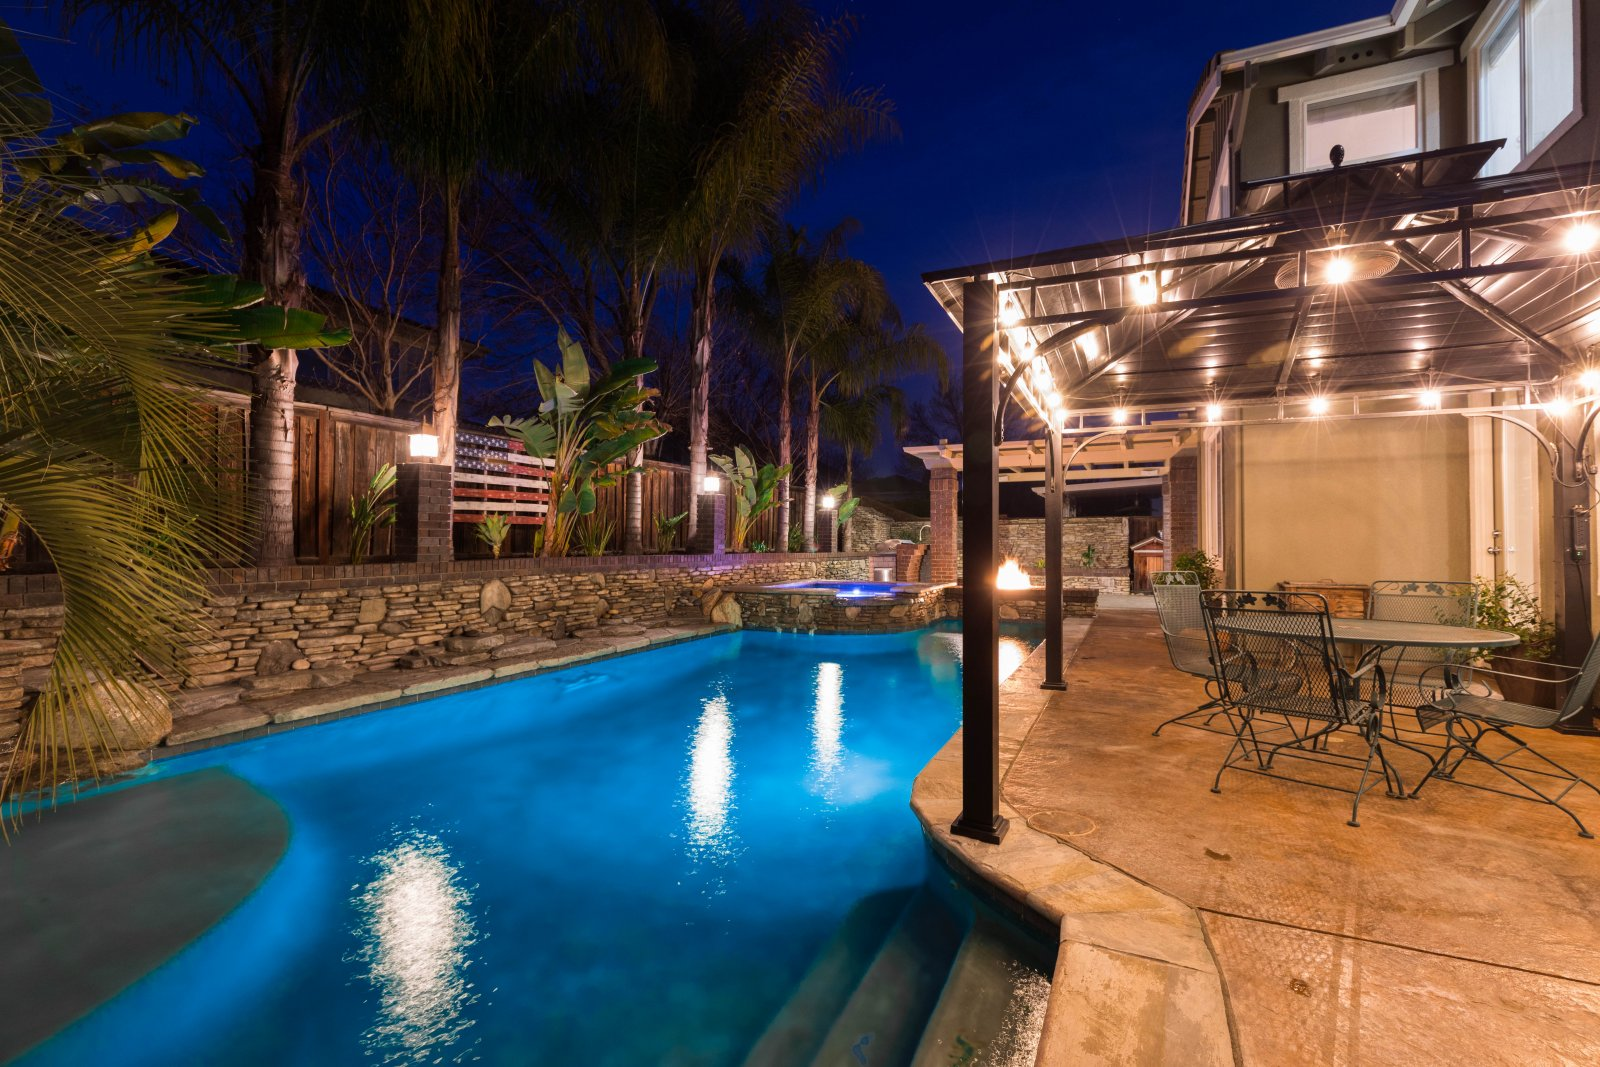 Backyard with pool for sale in Brentwood, CA